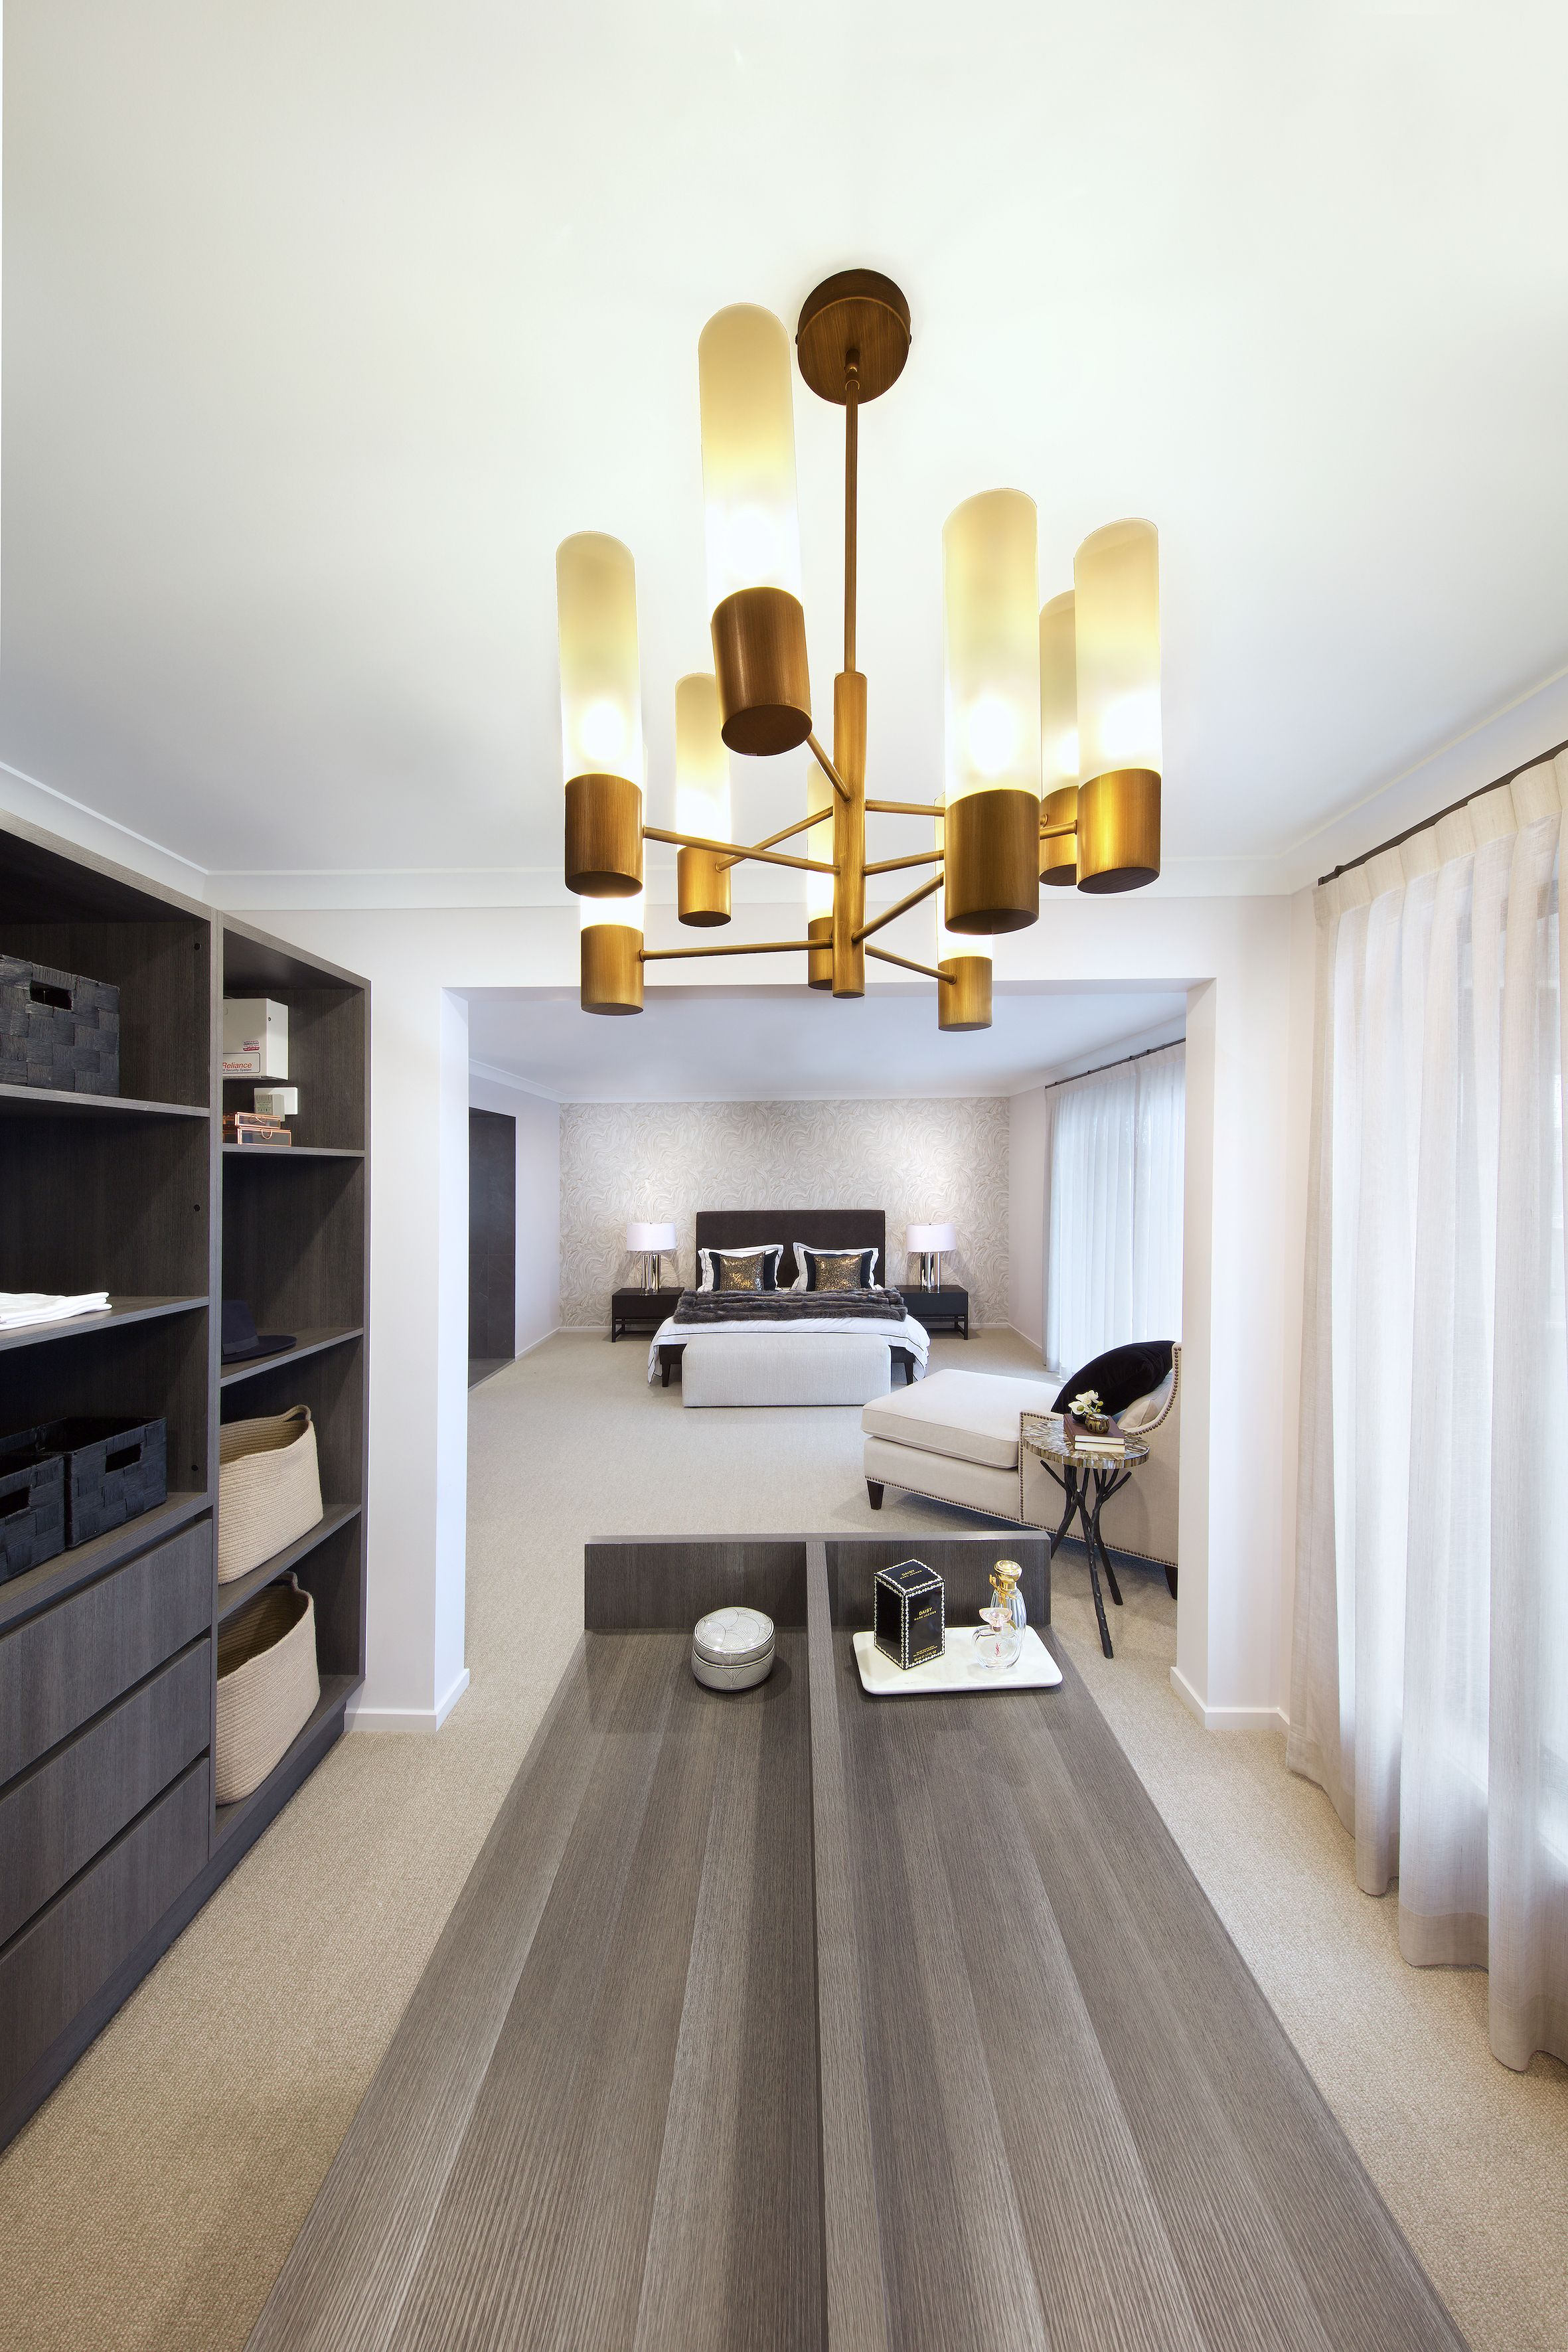 Armadale 41 | Dressing room, Master bedroom and Bedrooms